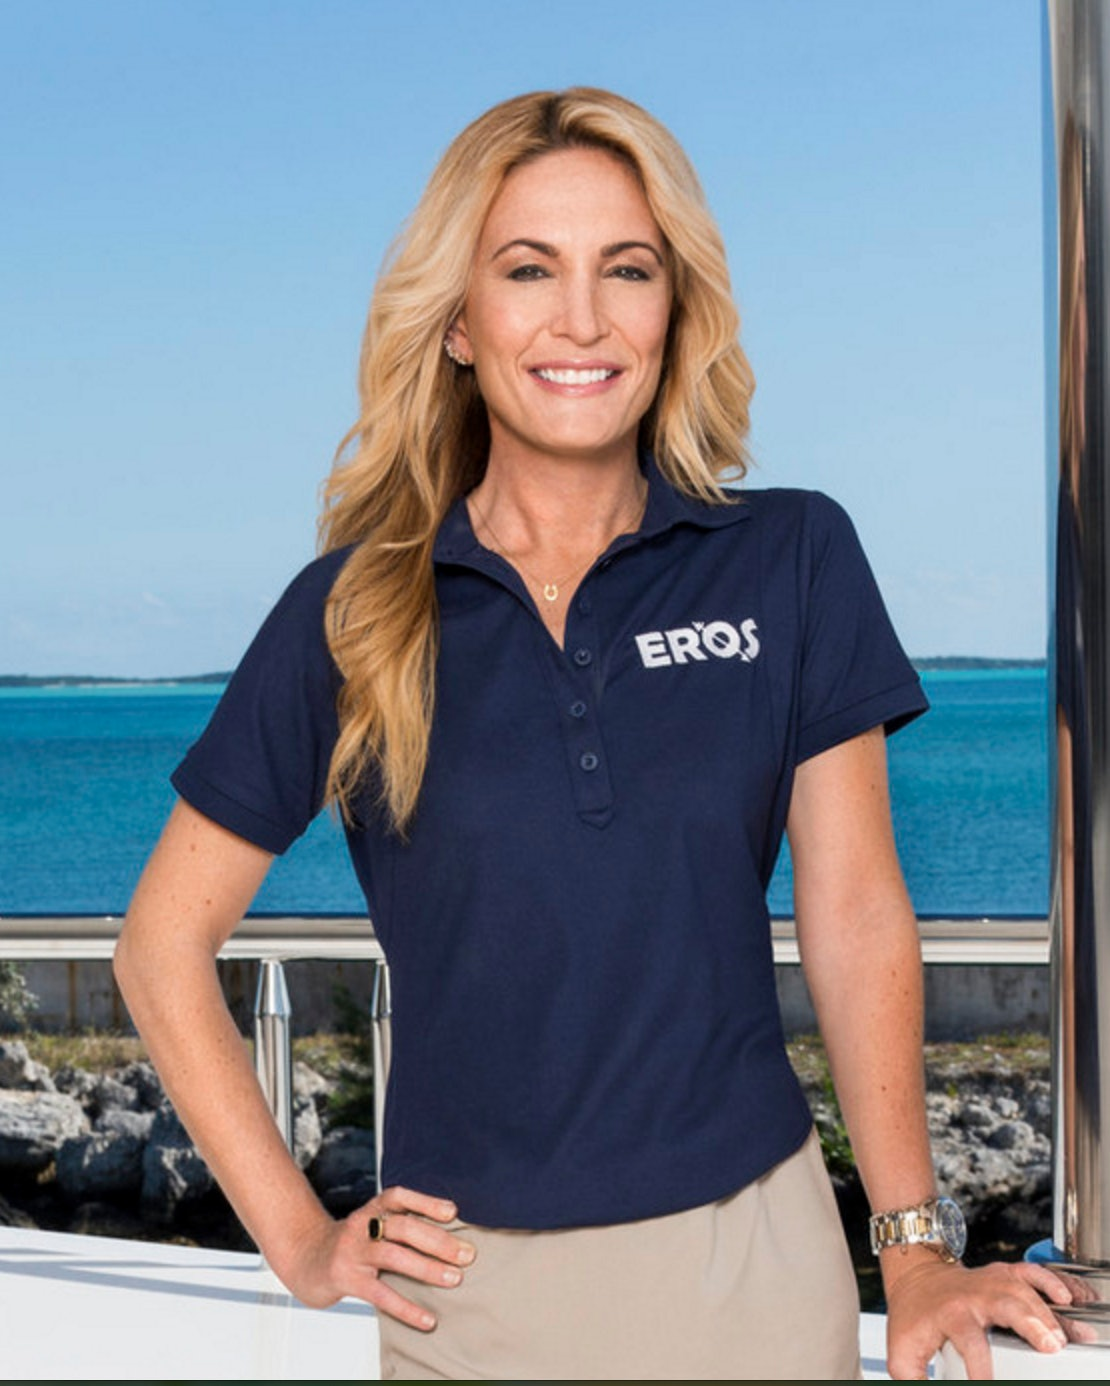 Below deck kate dating will